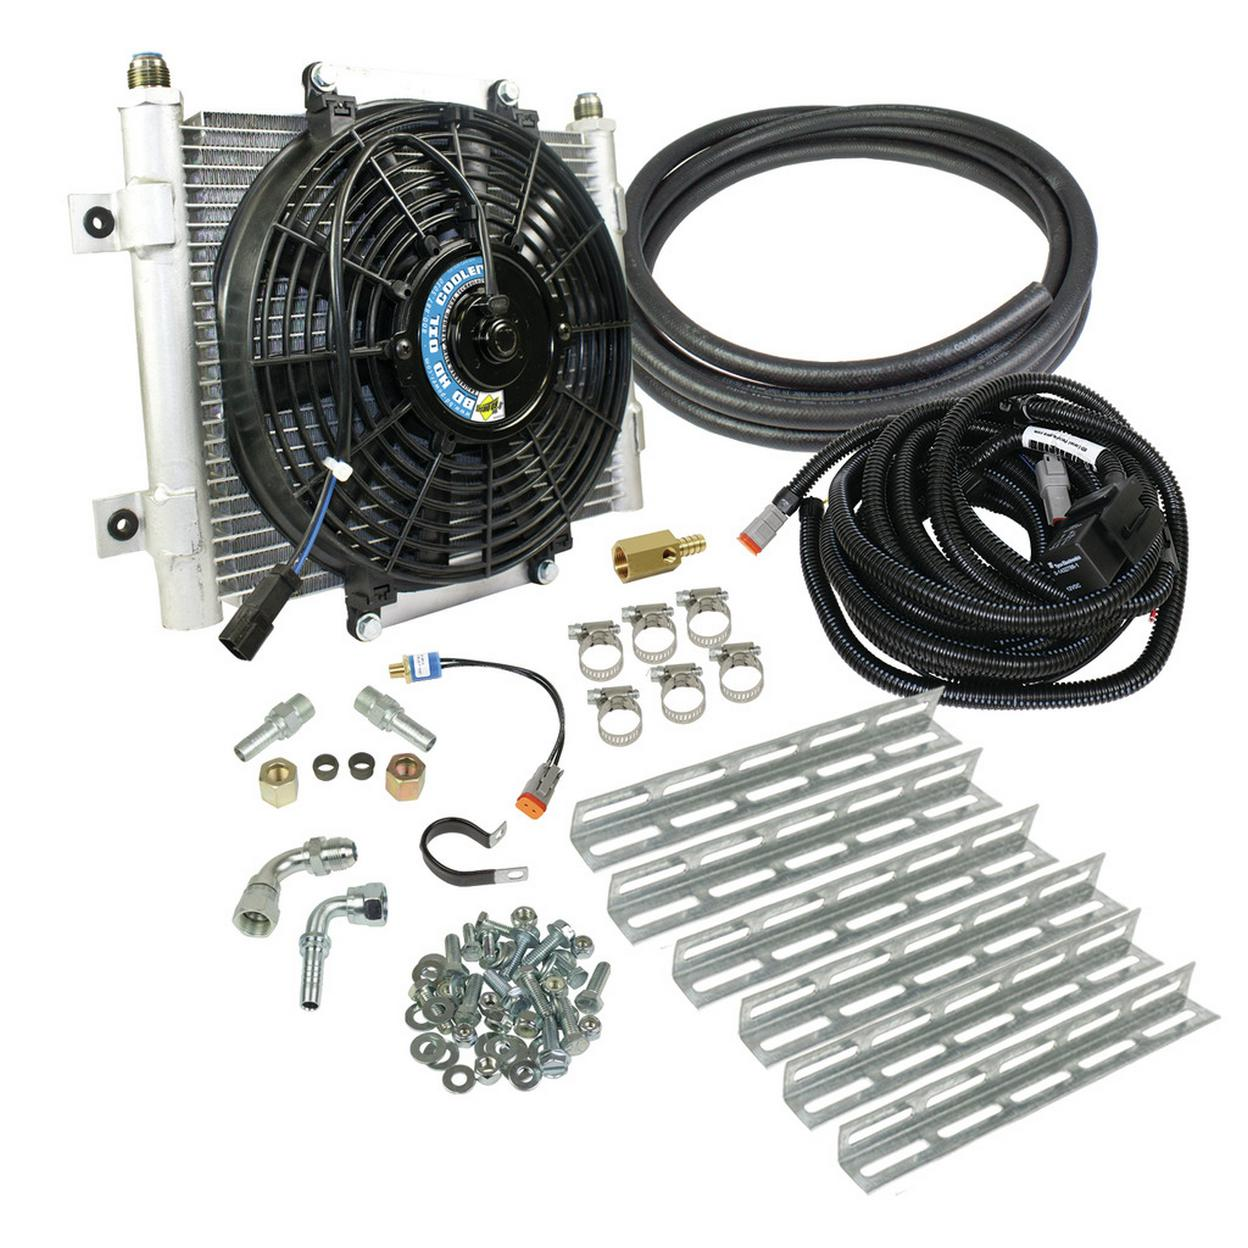 Xtruded Trans Oil Cooler - 5/8 inch Cooler Lines